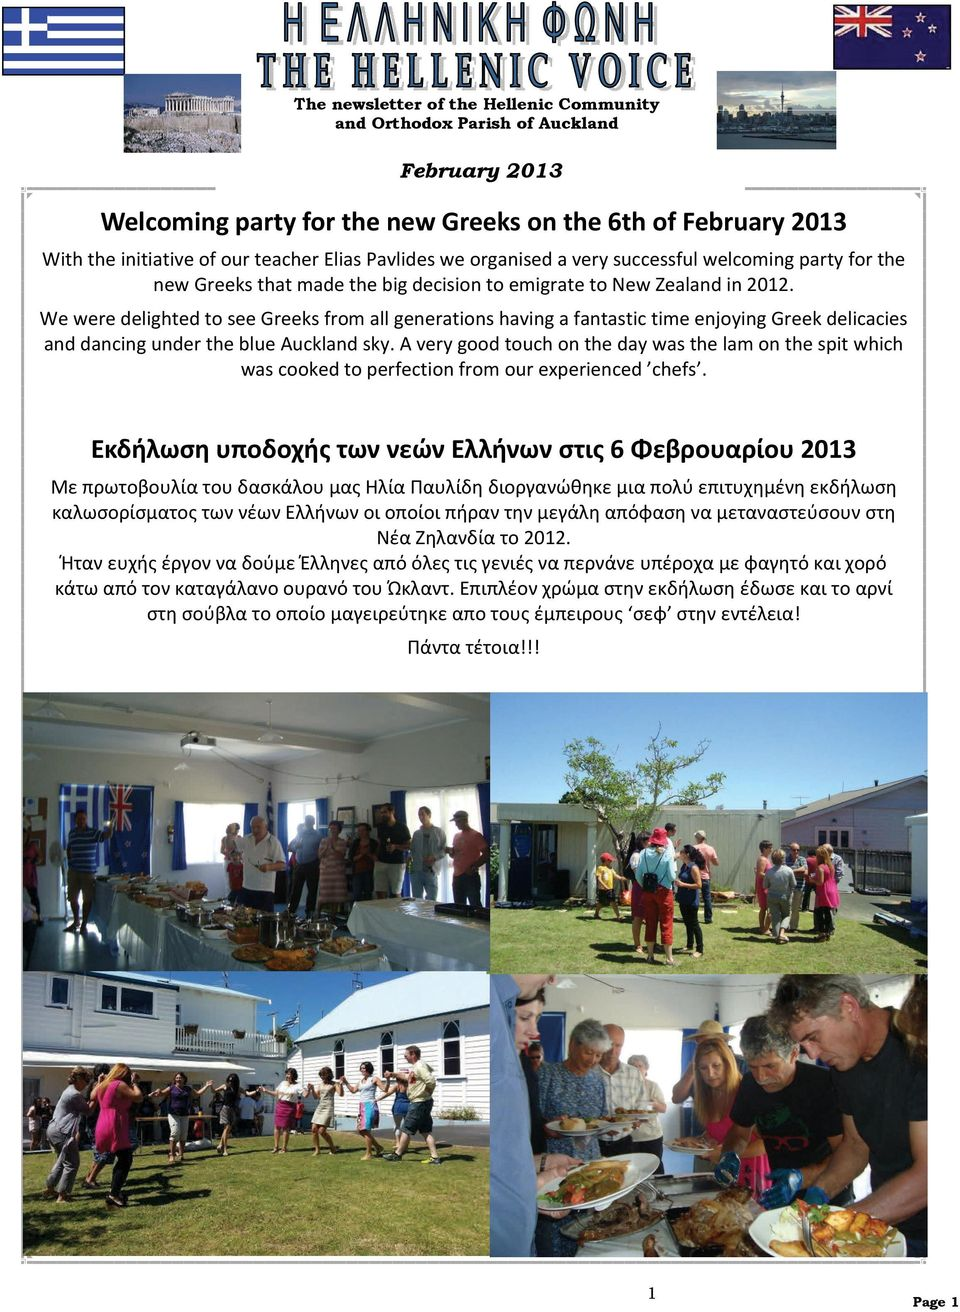 We were delighted to see Greeks from all generations having a fantastic time enjoying Greek delicacies and dancing under the blue Auckland sky.